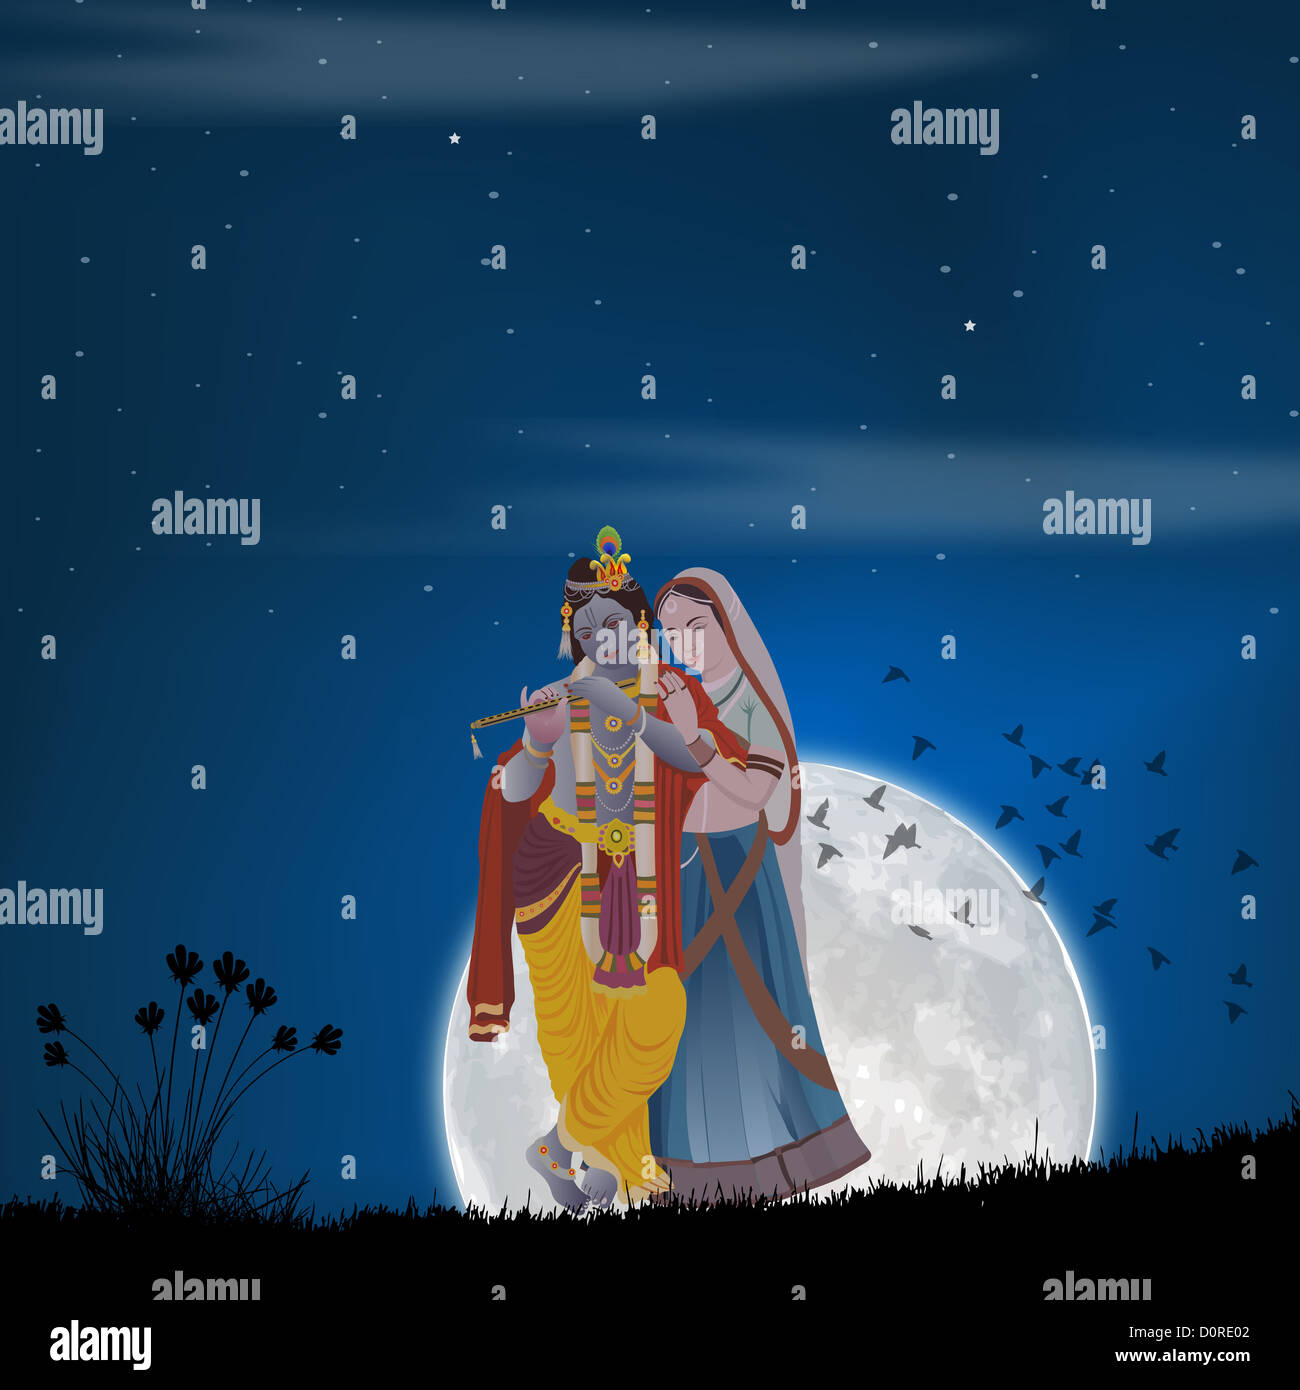 lord krishna with goddess radha D0RE02